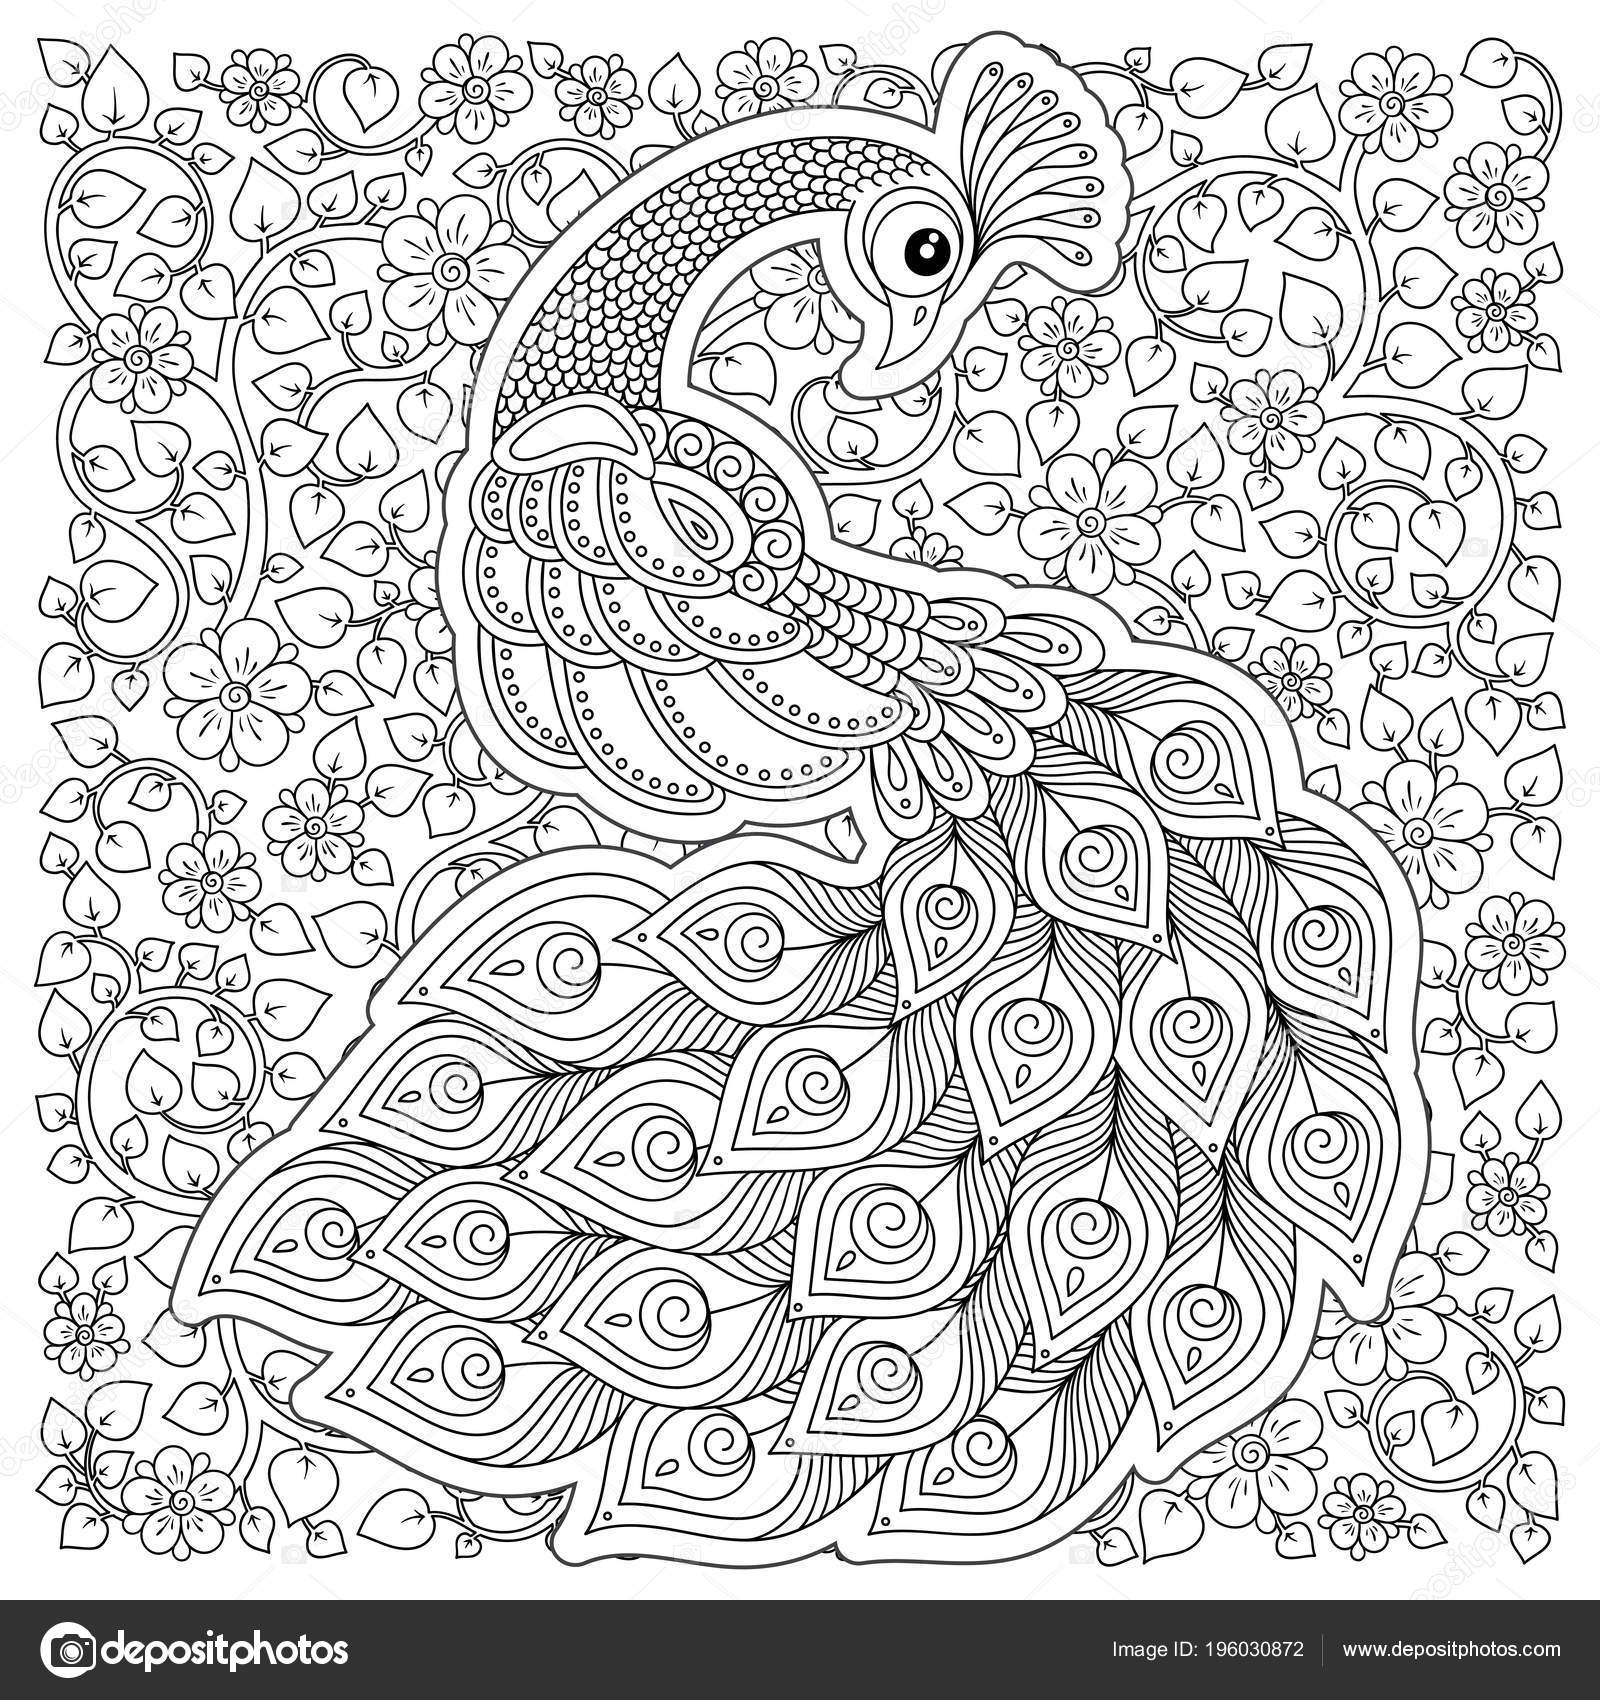 Peacock Coloriage Adulte Stress Noir Blanc Main Dessiné